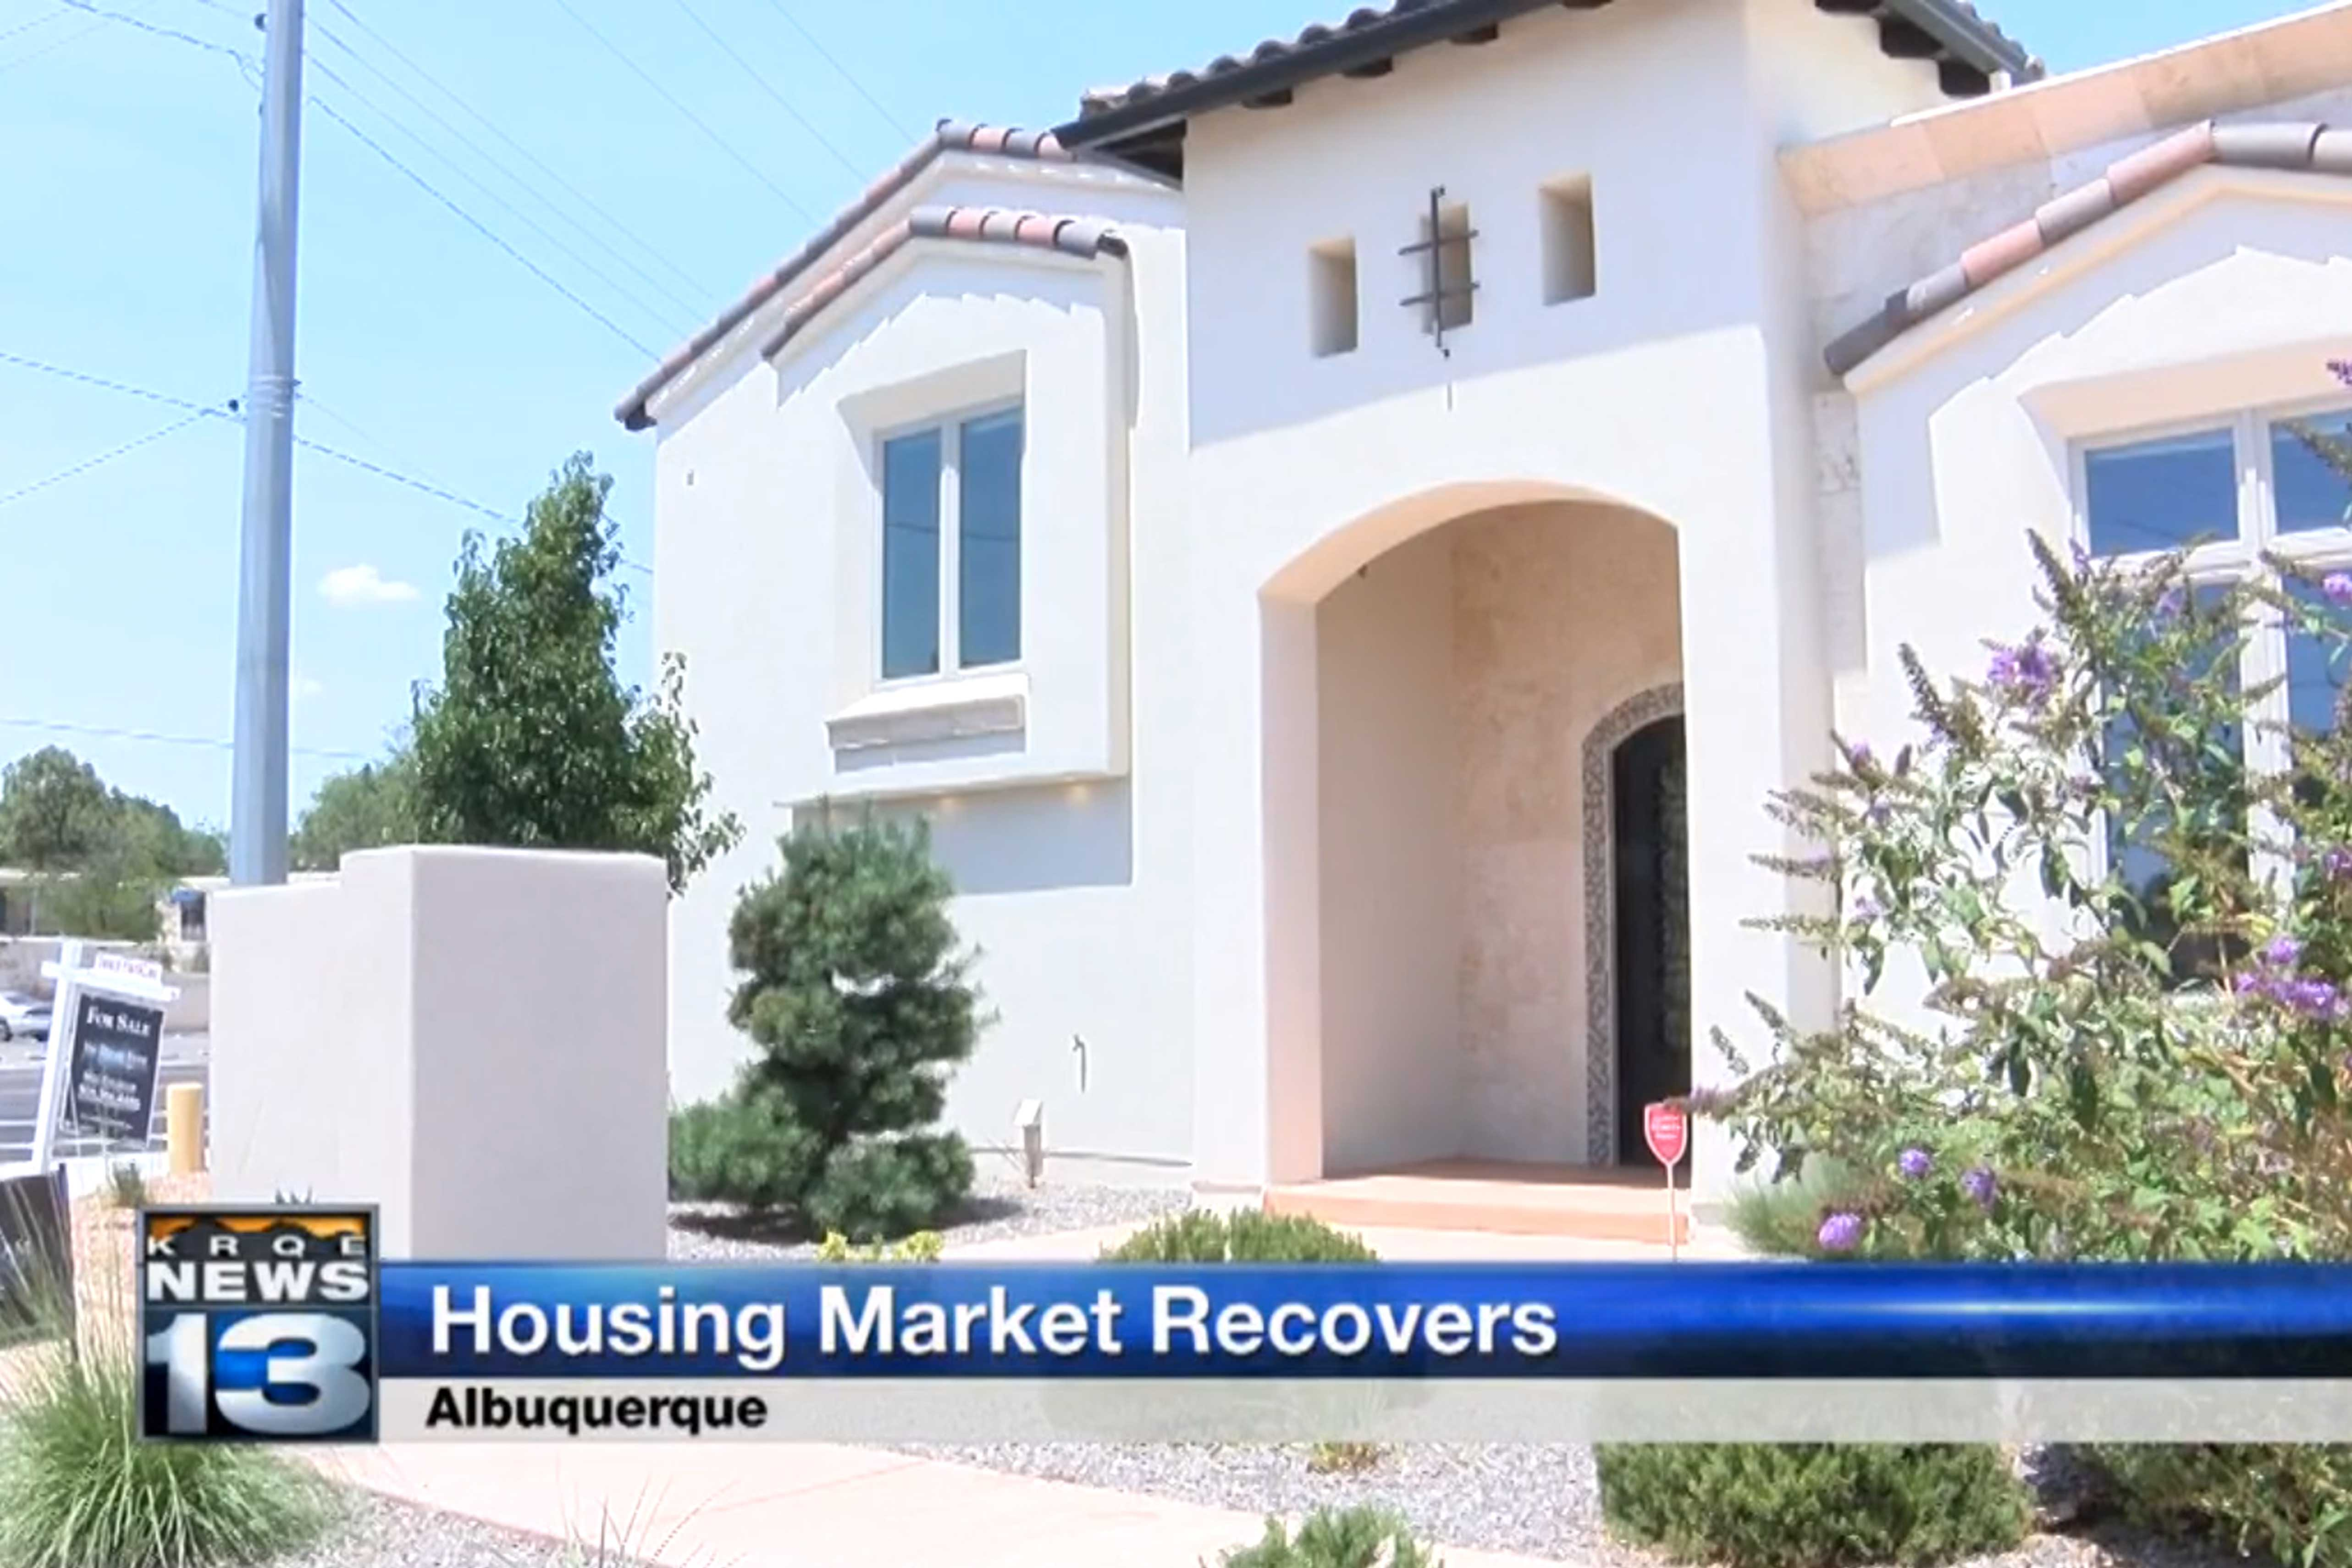 KRQE News: Albuquerque Housing Market on the Rise